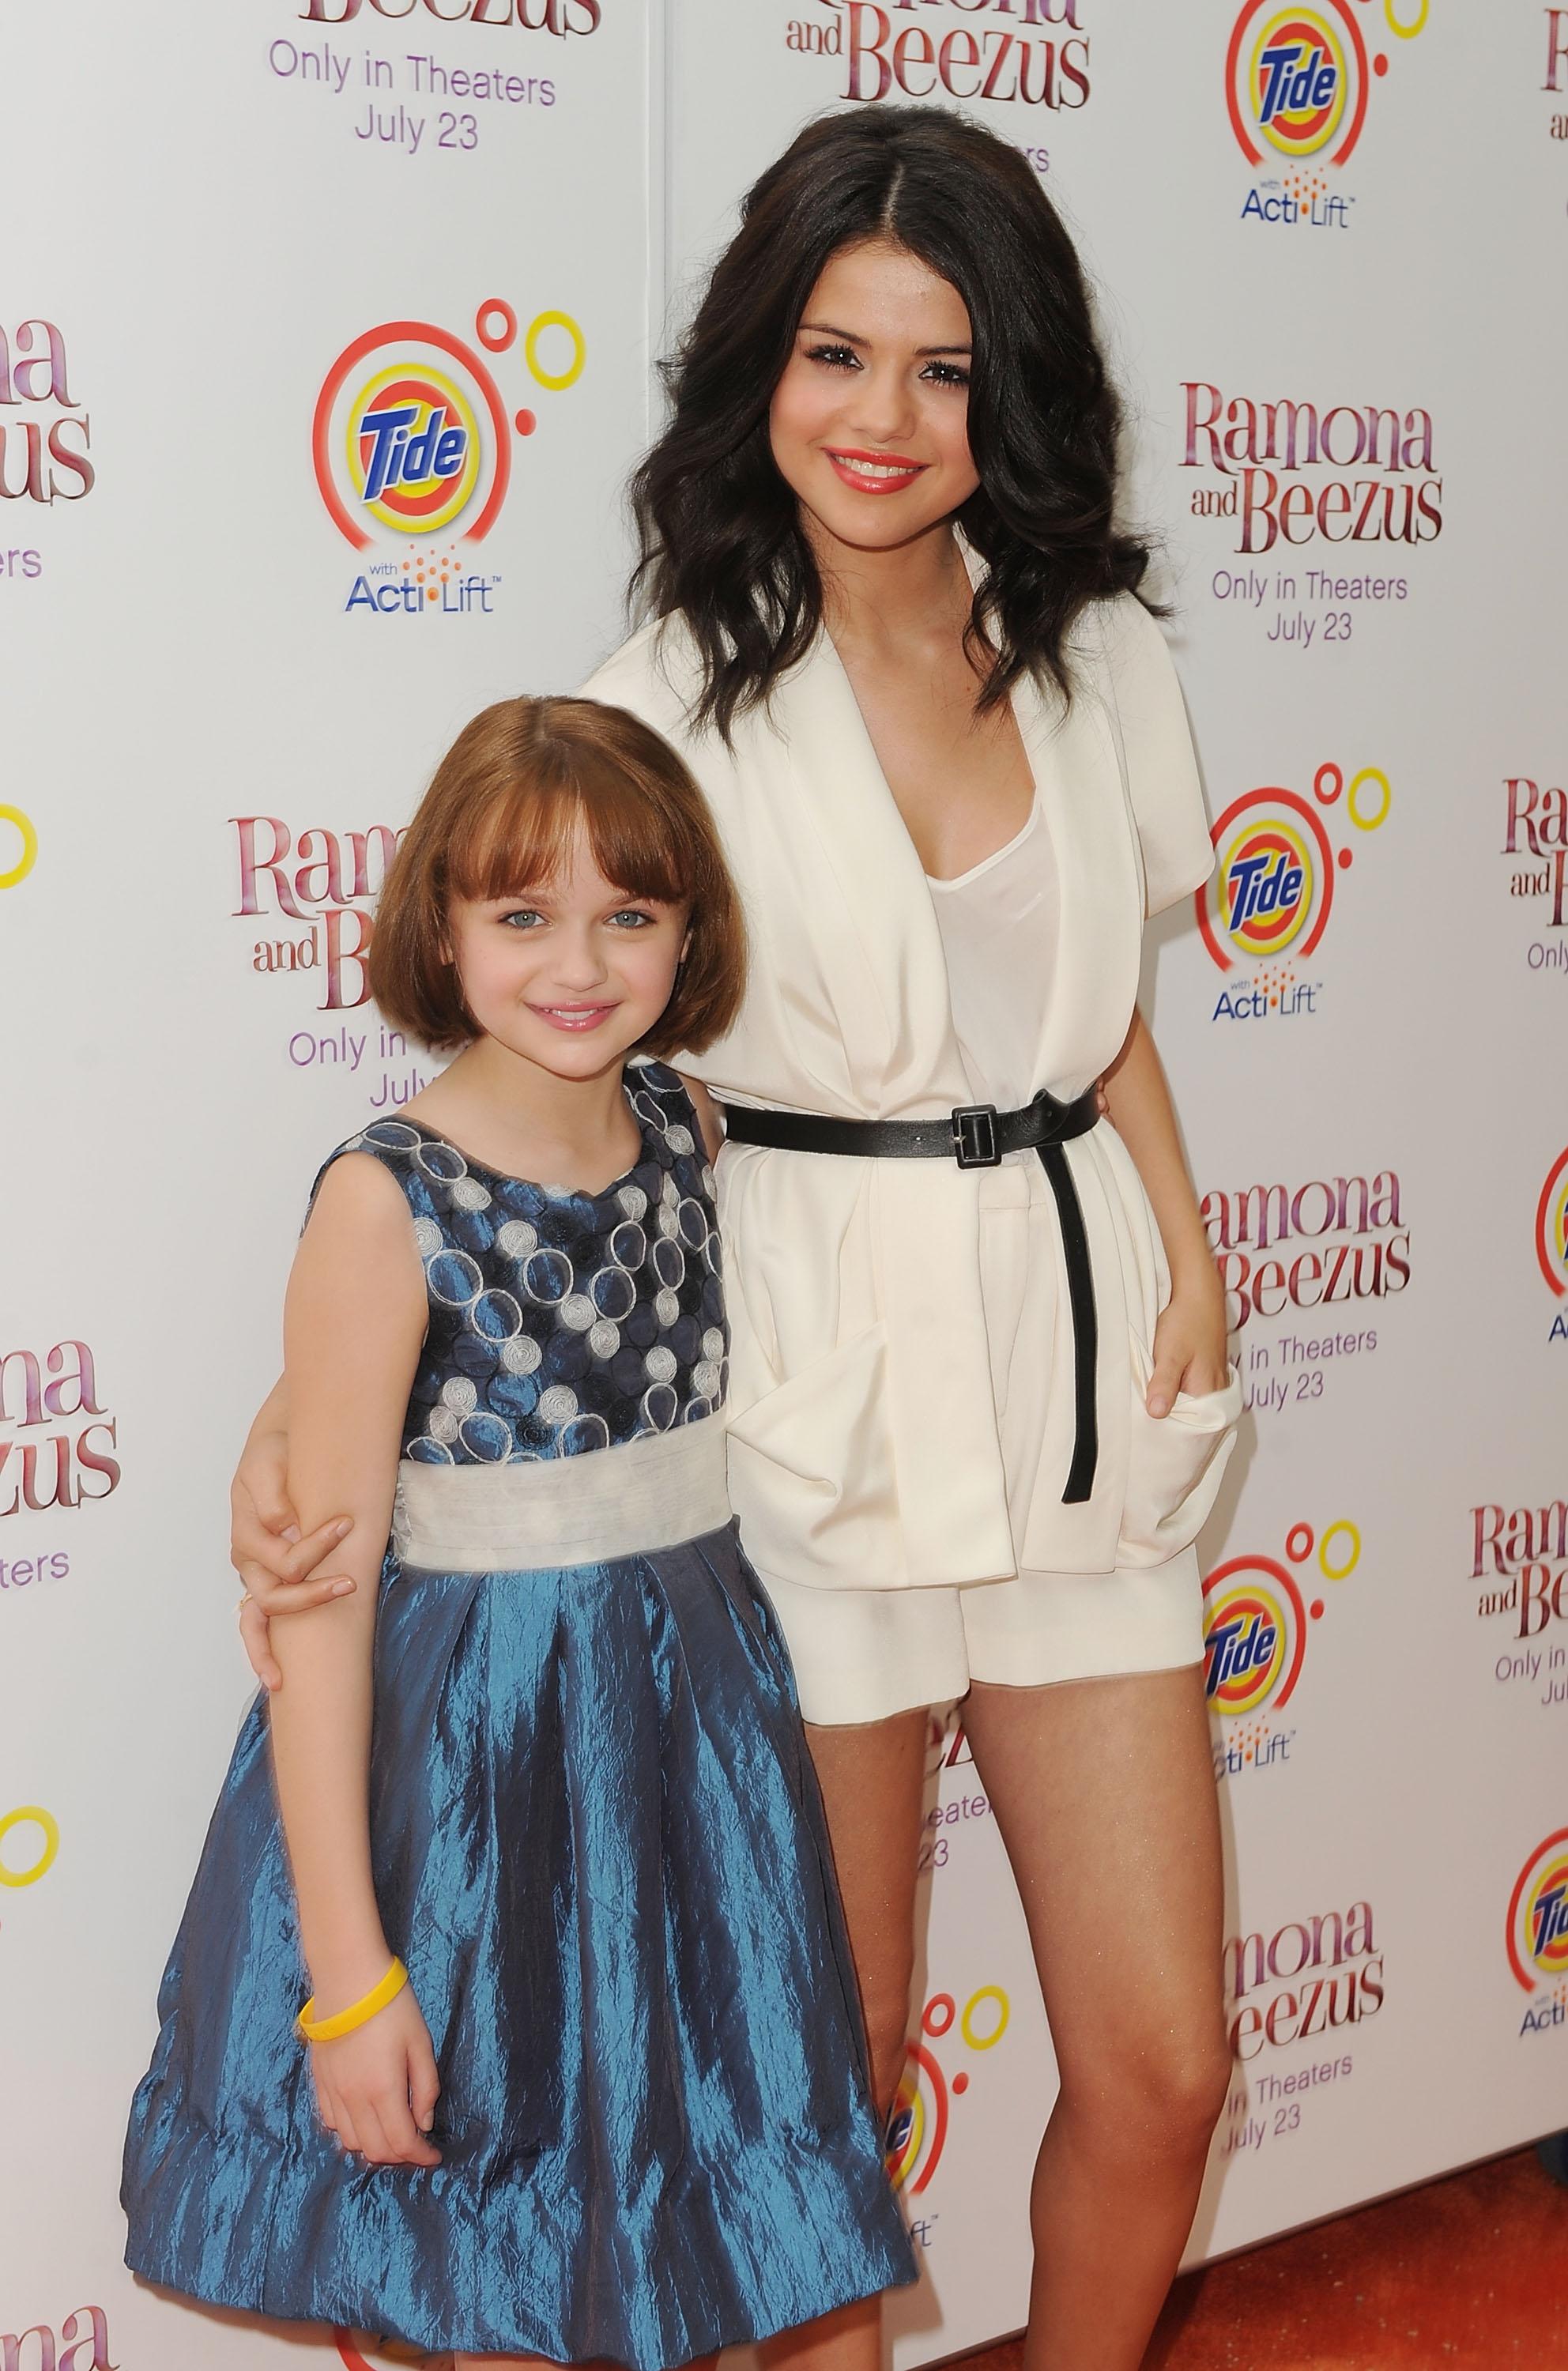 Fashion FTWs at the 'Ramona and Beezus' Red Carpet Premiere (PHOTOS)